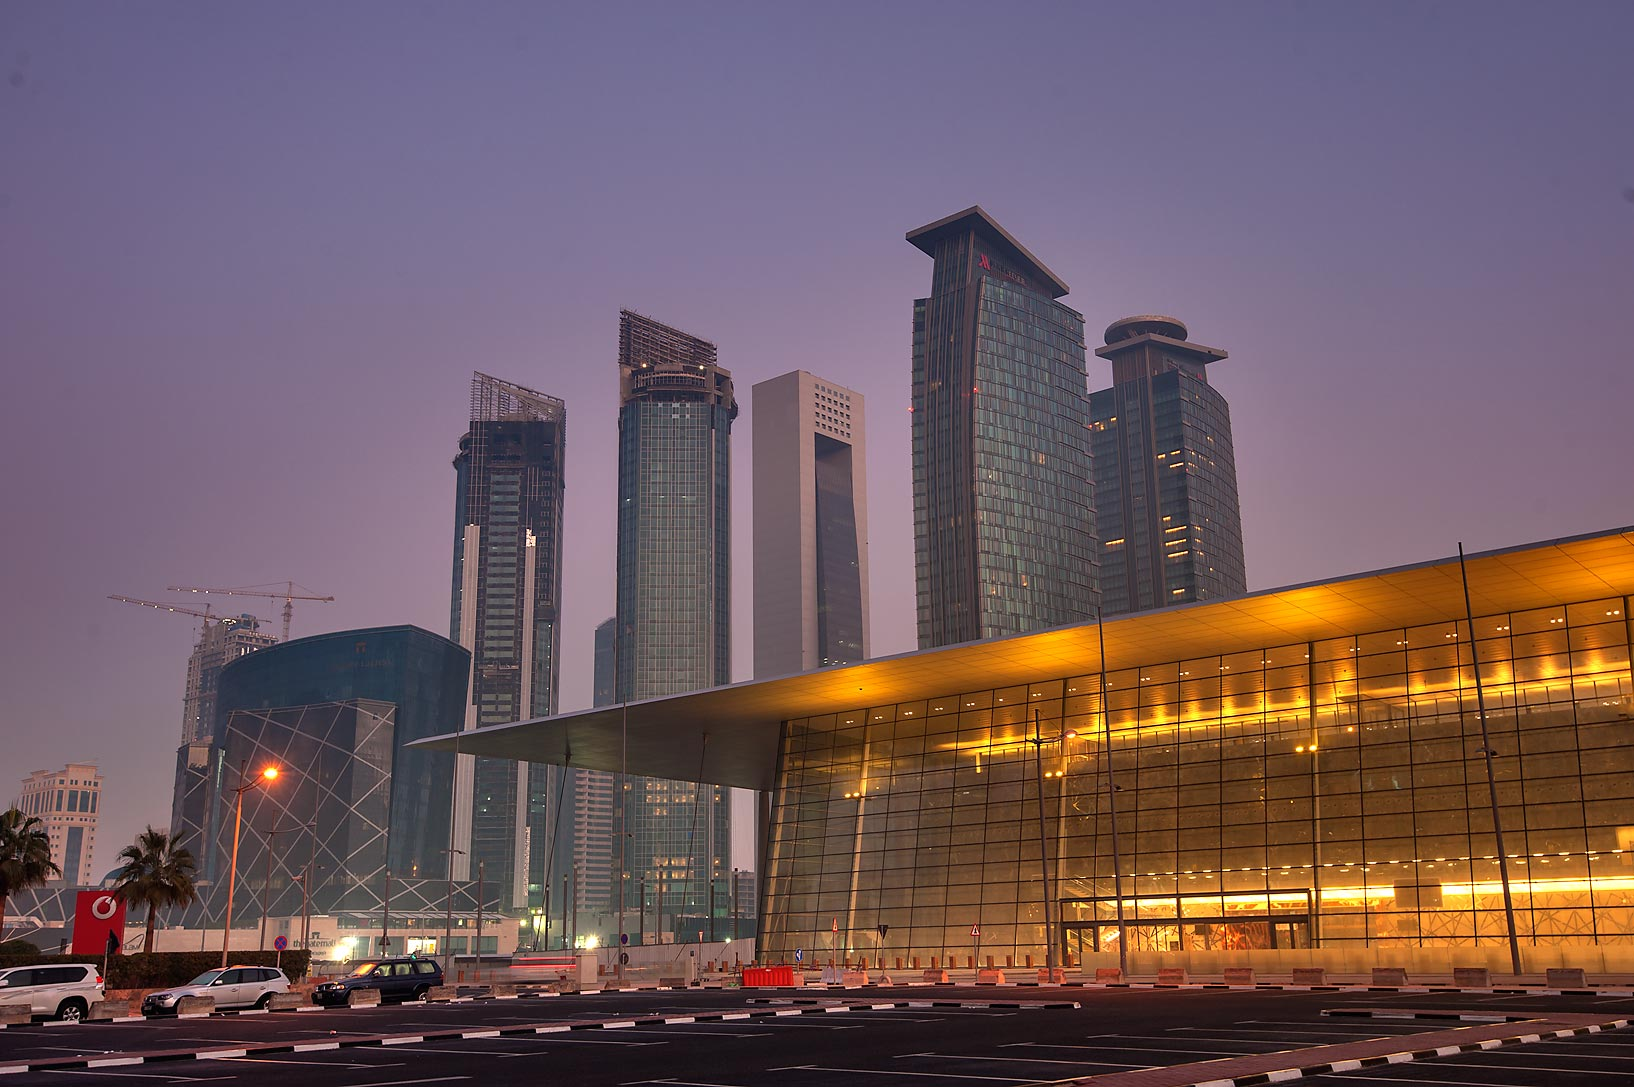 Convention Center and Marriott Hotel Complex in West Bay. Doha, Qatar